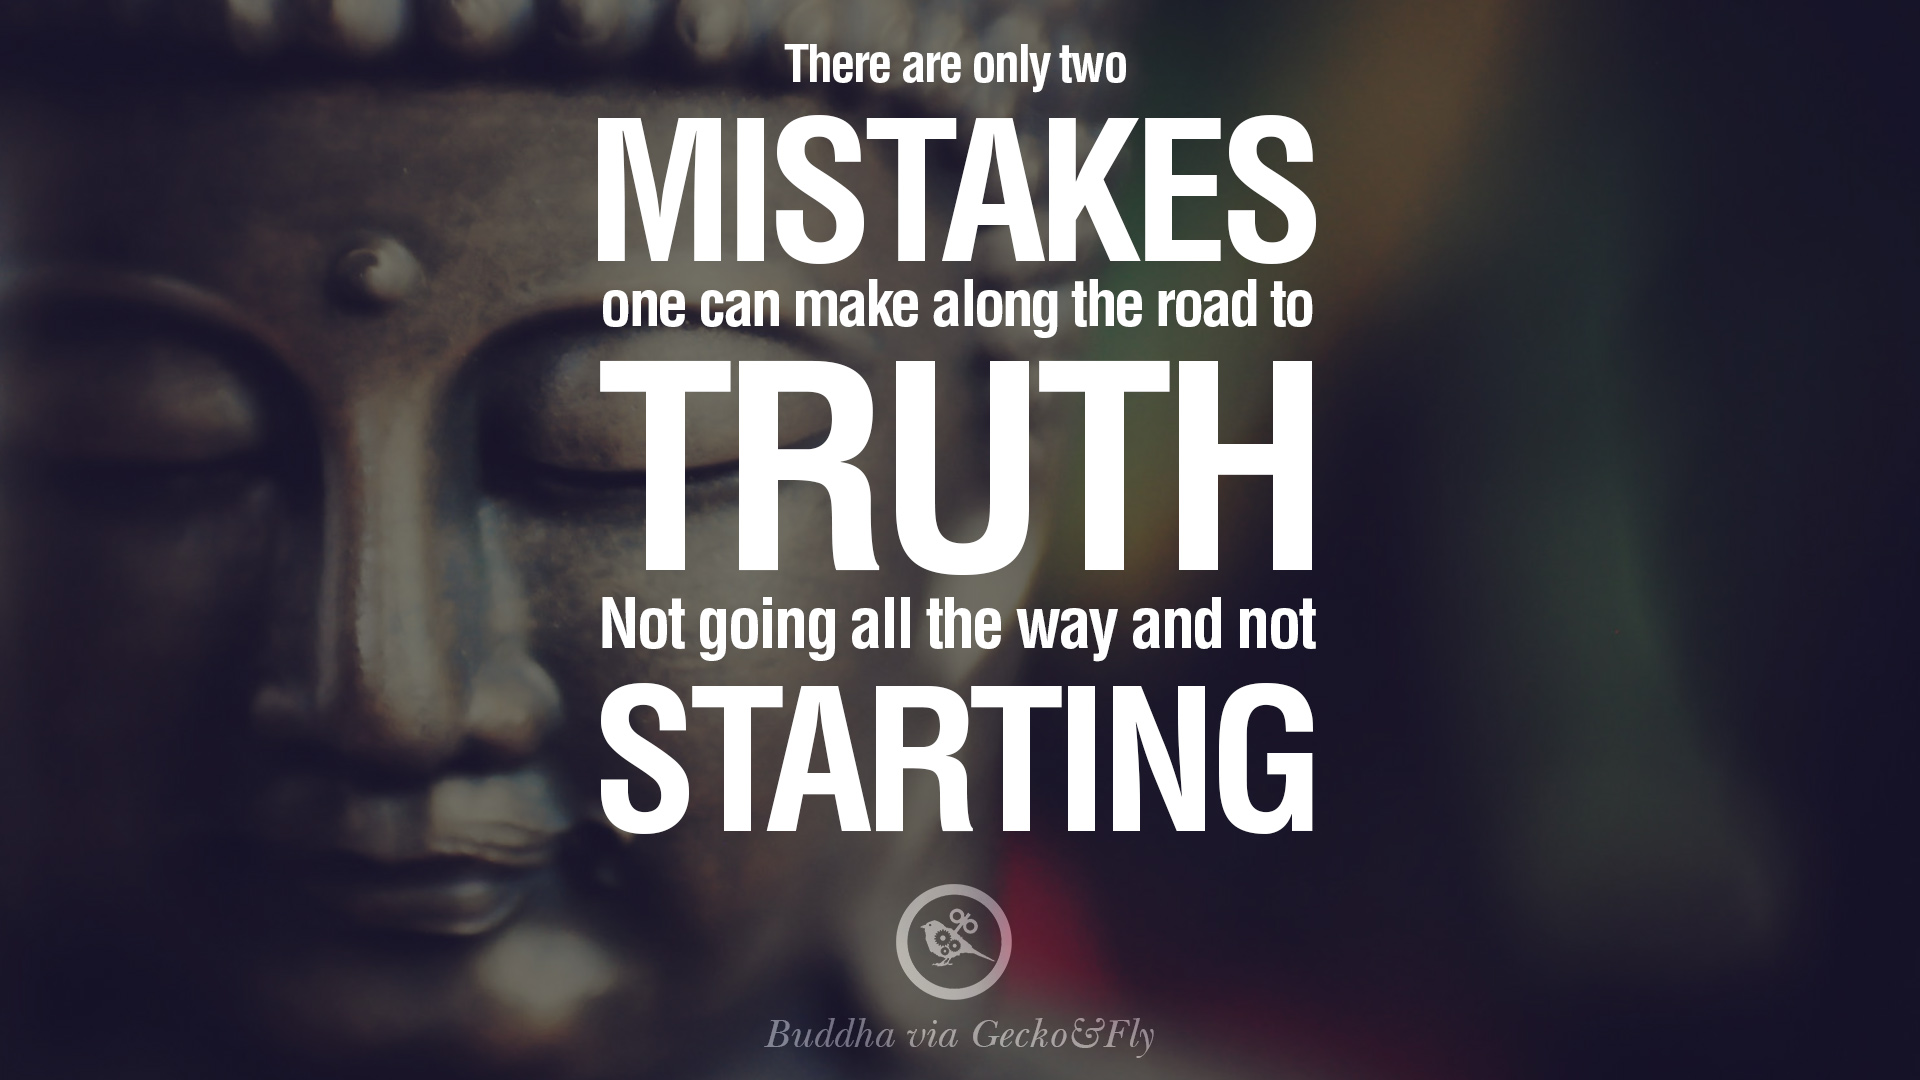 Awakening The Buddha Within Quotes: Buddha Quotes On Enlightenment. QuotesGram